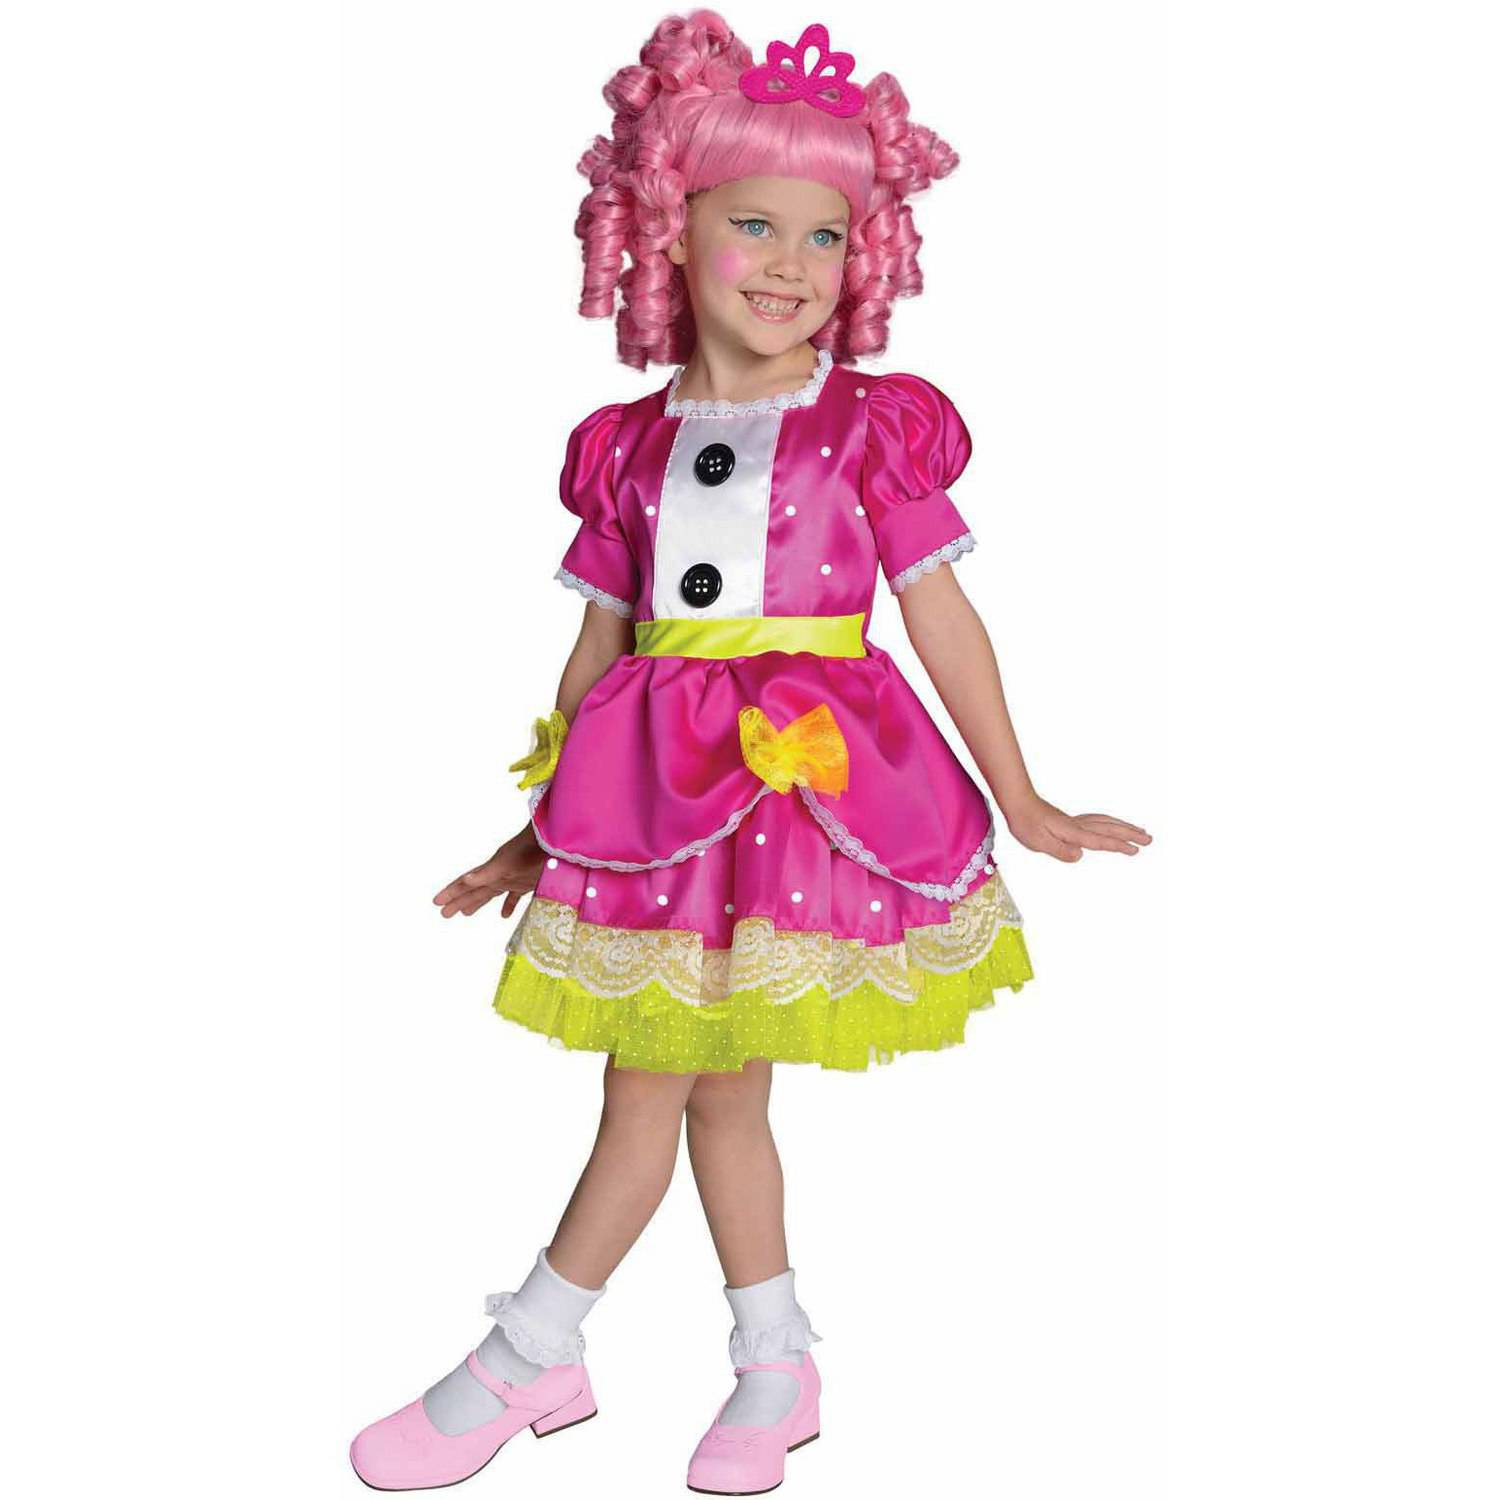 Lalaloopsy Deluxe Jewel Sparkles Girls' Child Halloween Costume